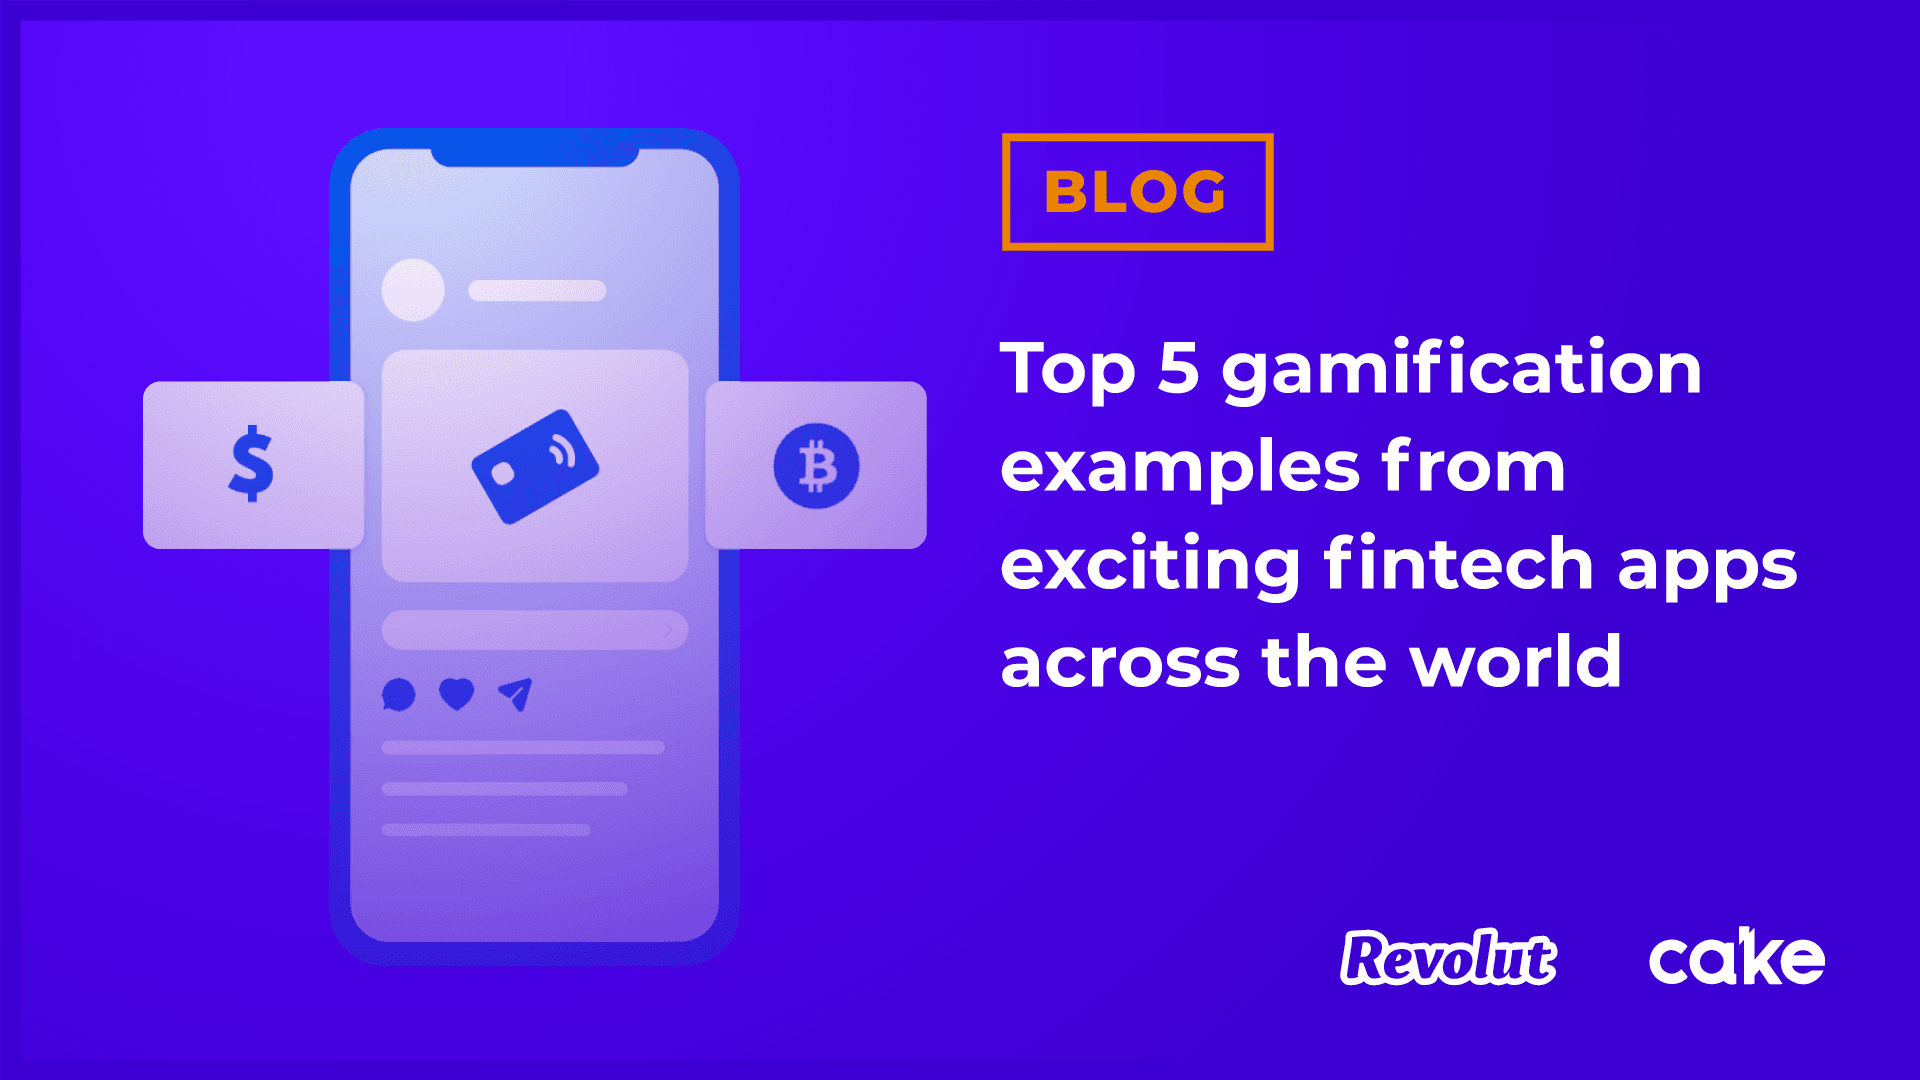 Top 5 gamification examples from exciting fintech apps across the world